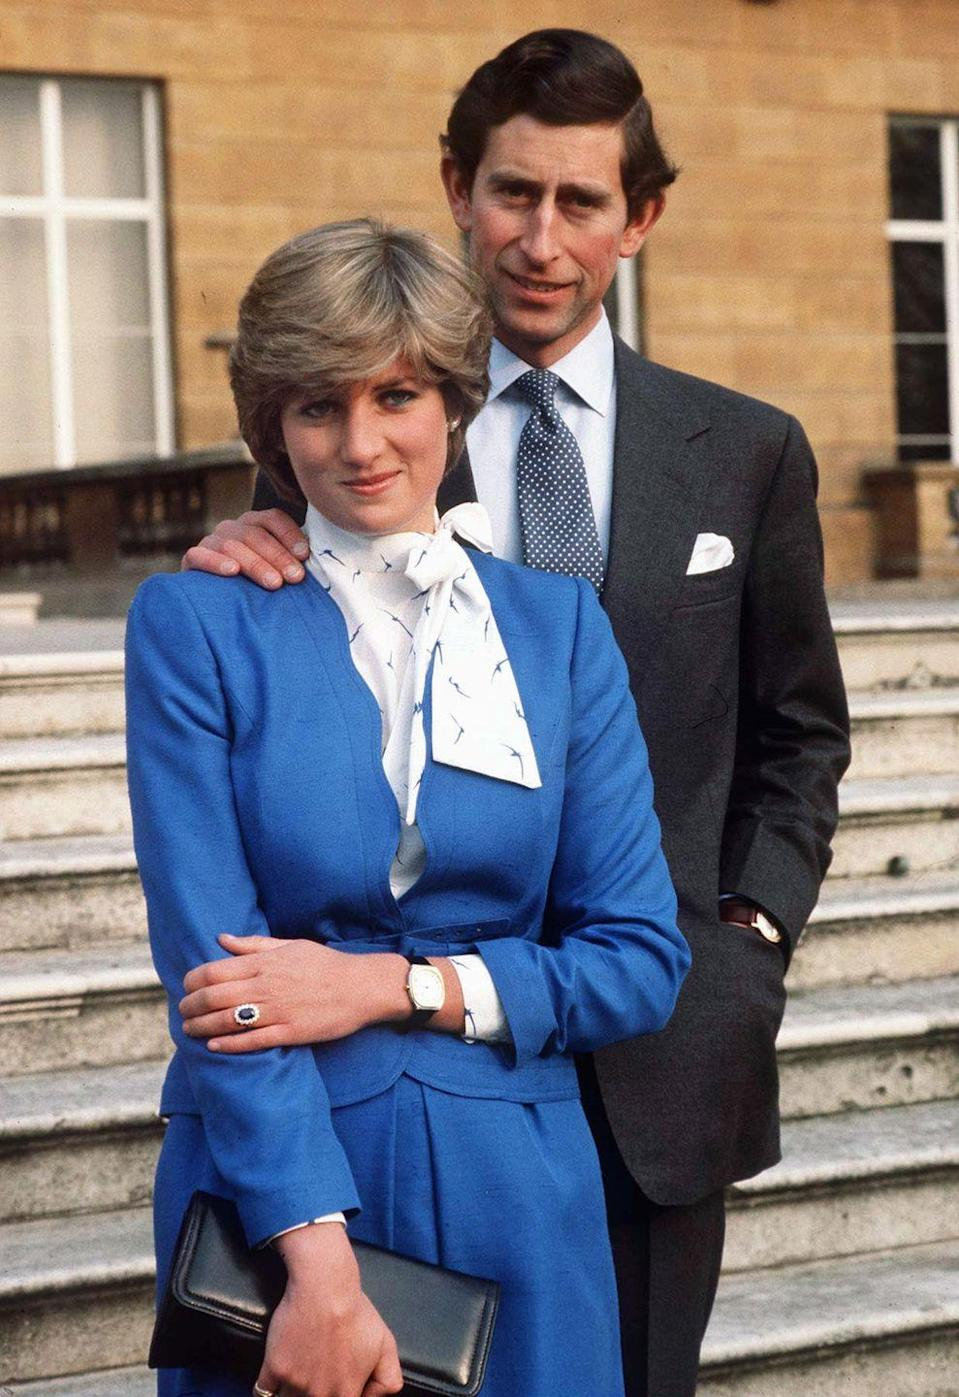 """<p>Lady Diana Spencer and Prince Charles announced their engagement in 1981 on the steps of Buckingham Palace. The future princess selected the ring herself from a Garrard catalogue. Some say that the <a href=""""https://www.goodhousekeeping.com/life/a22727712/princess-diana-engagement-ring/"""" rel=""""nofollow noopener"""" target=""""_blank"""" data-ylk=""""slk:Palace was upset with the ring selection"""" class=""""link rapid-noclick-resp"""">Palace was upset with the ring selection</a> because it wasn't a rare jewel and could be purchased by anyone at the time. </p>"""